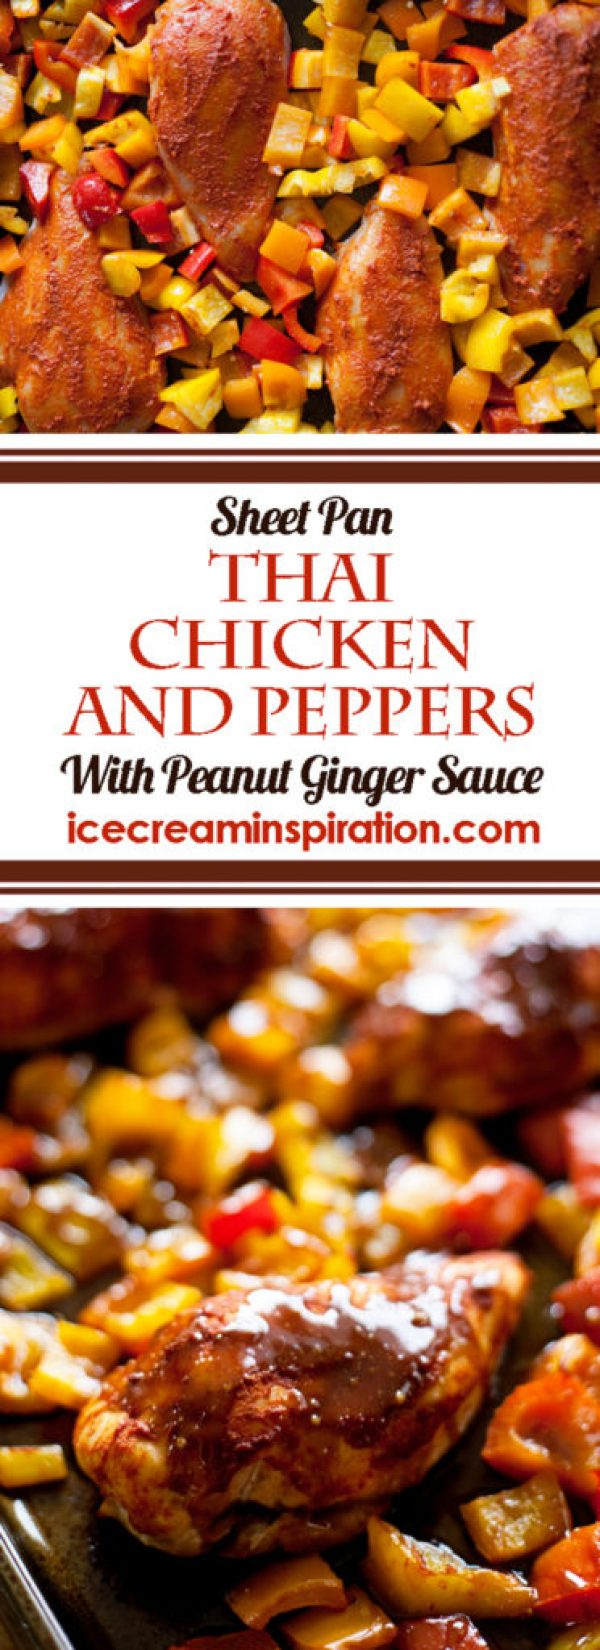 Would you like to know how to make an easy Thai dinner with no cleanup? This Sheet Pan Thai Chicken and Peppers with Peanut Ginger Sauce is for you! Thai chicken, Thai main dishes, sheet pan suppers, sheet pan dinners